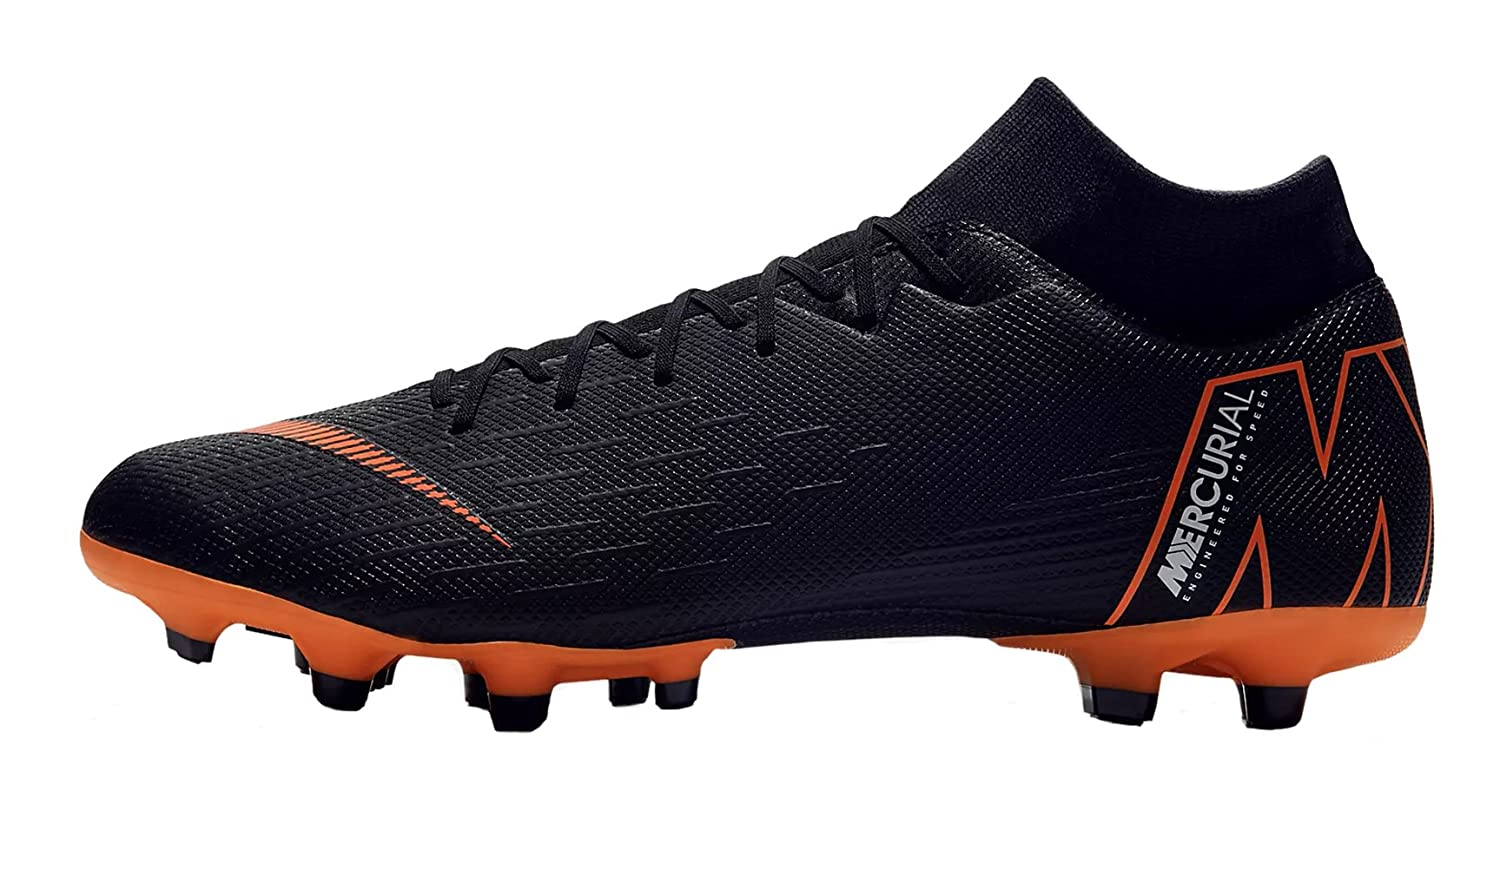 Nike Mercurial Superfly VI Academy Multi-Ground Soccer Cleat / サッカー クリーツ メンズ B071SDFVHL US 11